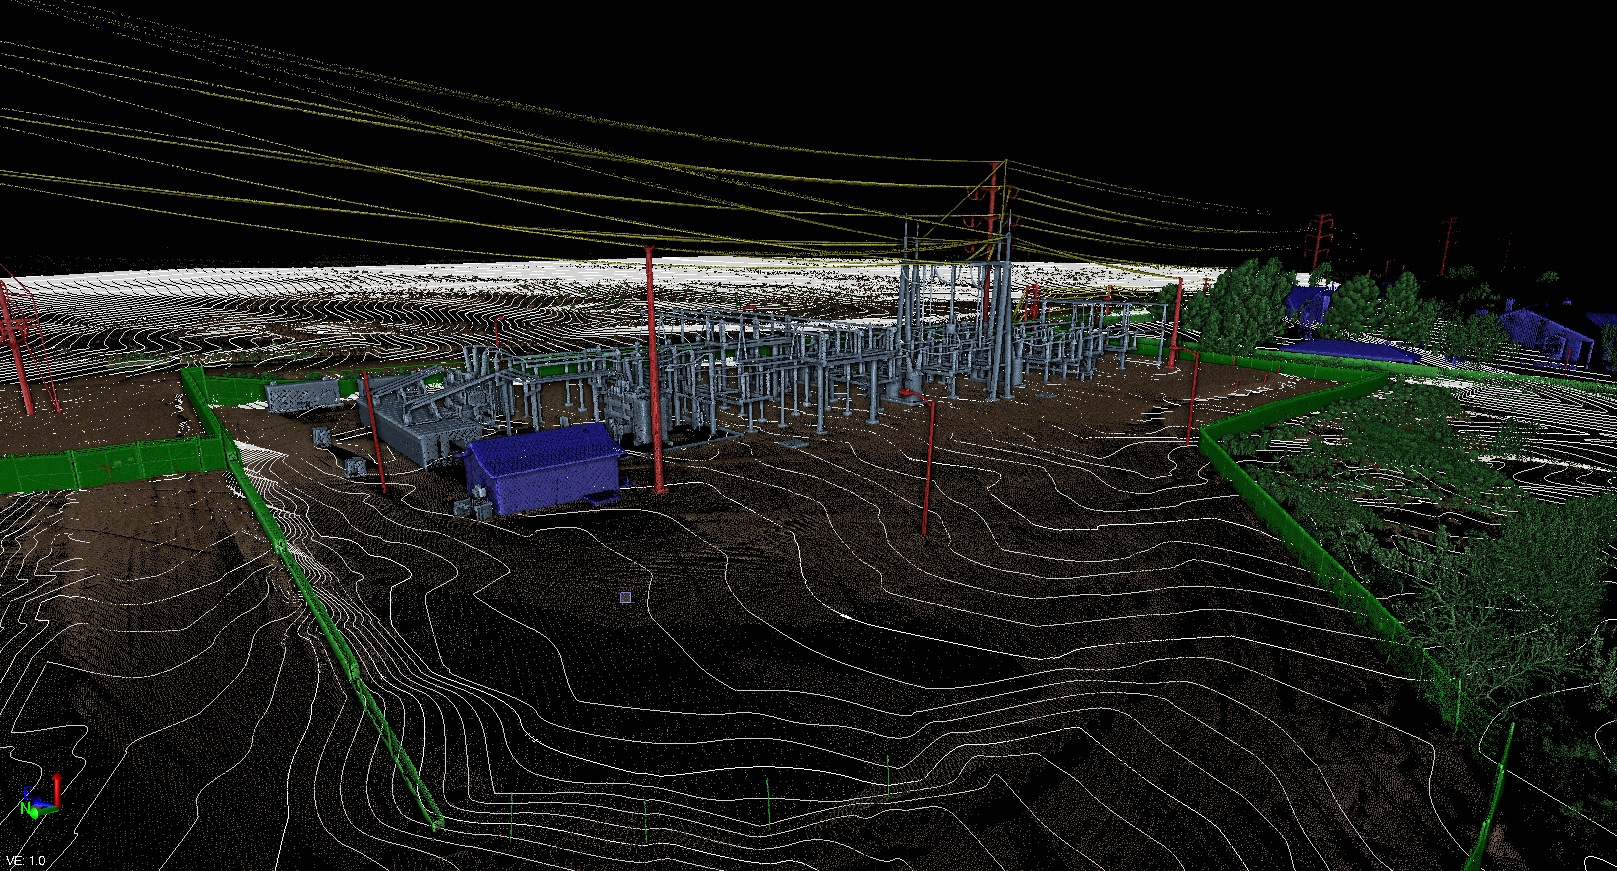 3D Site View with Contour Lines